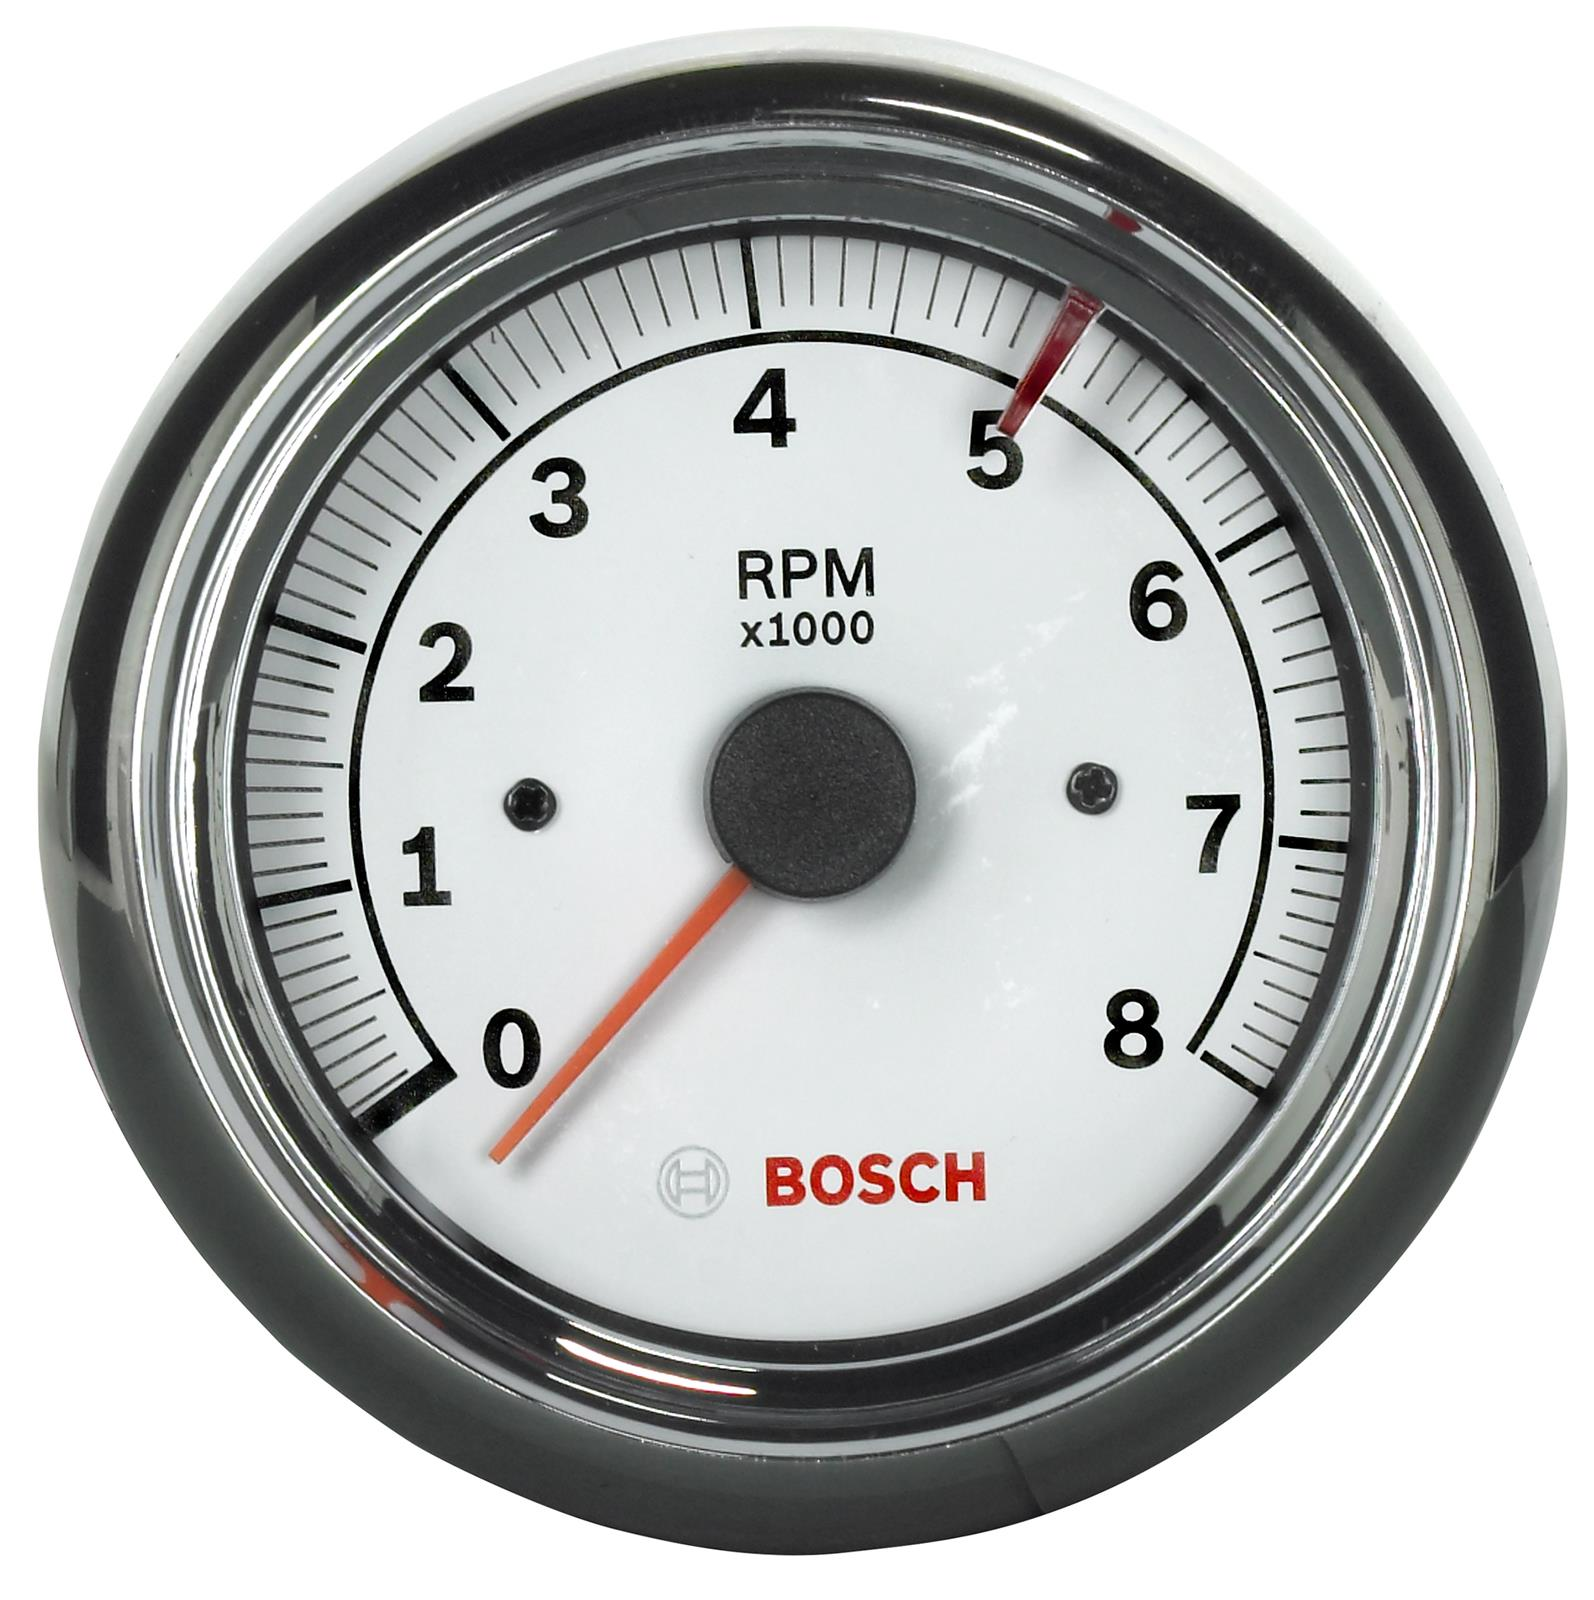 hight resolution of bosch sport ii tachometer gauges fst 7903 free shipping on orders over 99 at summit racing